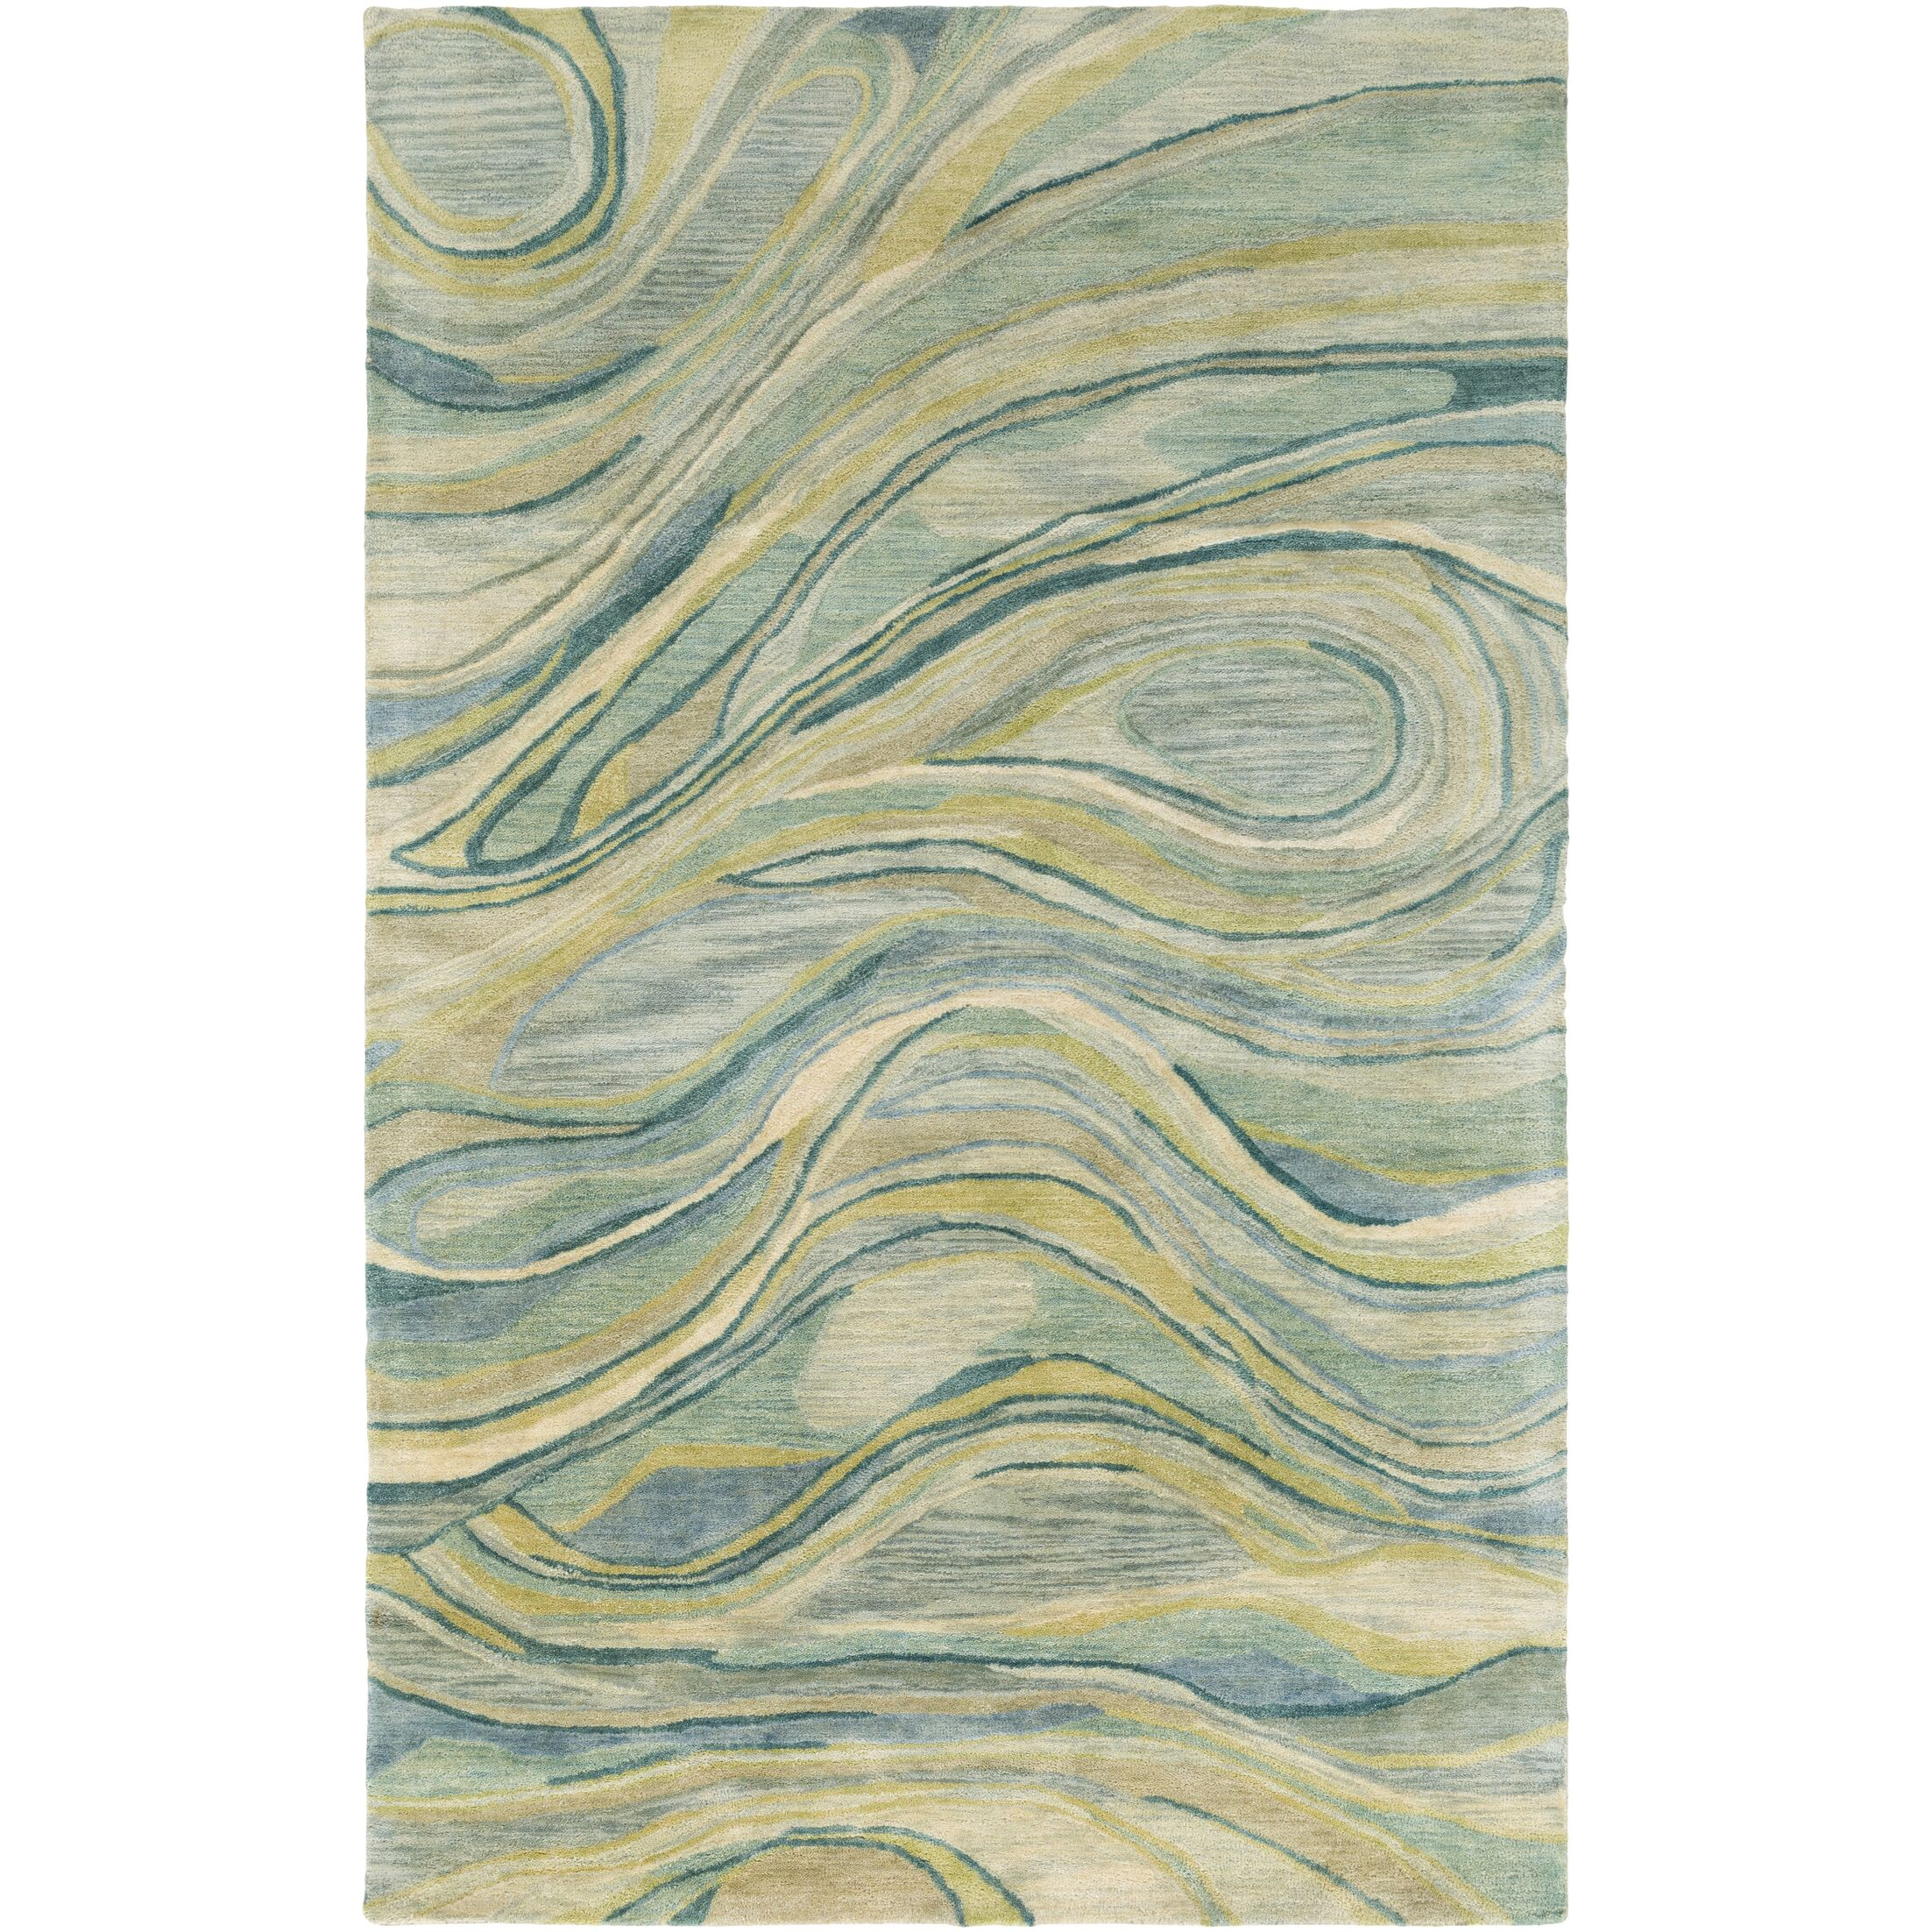 Natural Affinity Hand-Tufted Green/Beige Area Rug Rug Size: Rectangle 8' x 10'